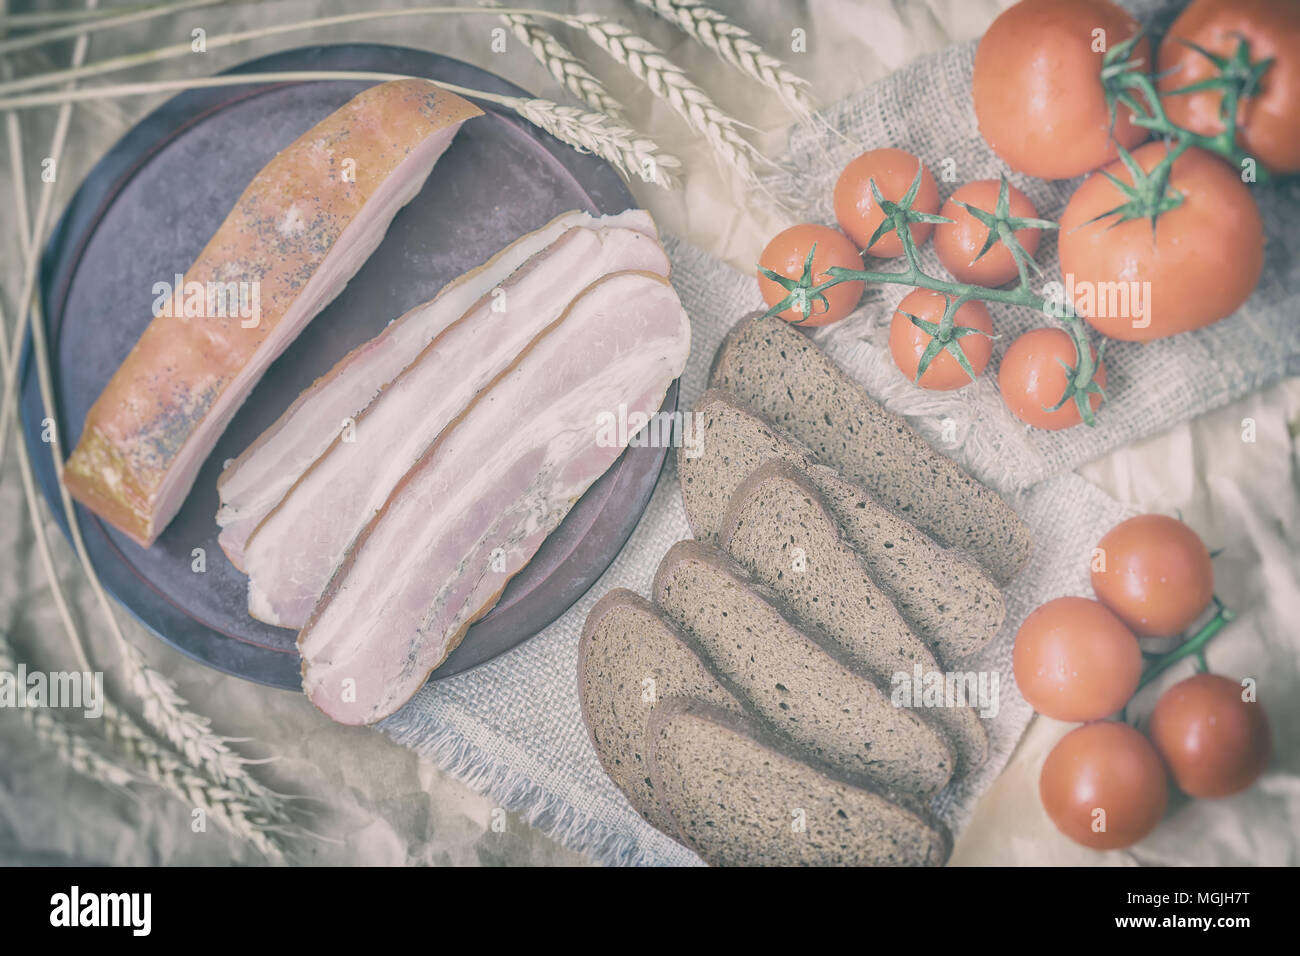 Rustic style of fresh organic food. Quick tasty snack. Slices of bacon, rye black bread, ripe red tomatoes on napkin from burlar. Top view. Vintage ba - Stock Image